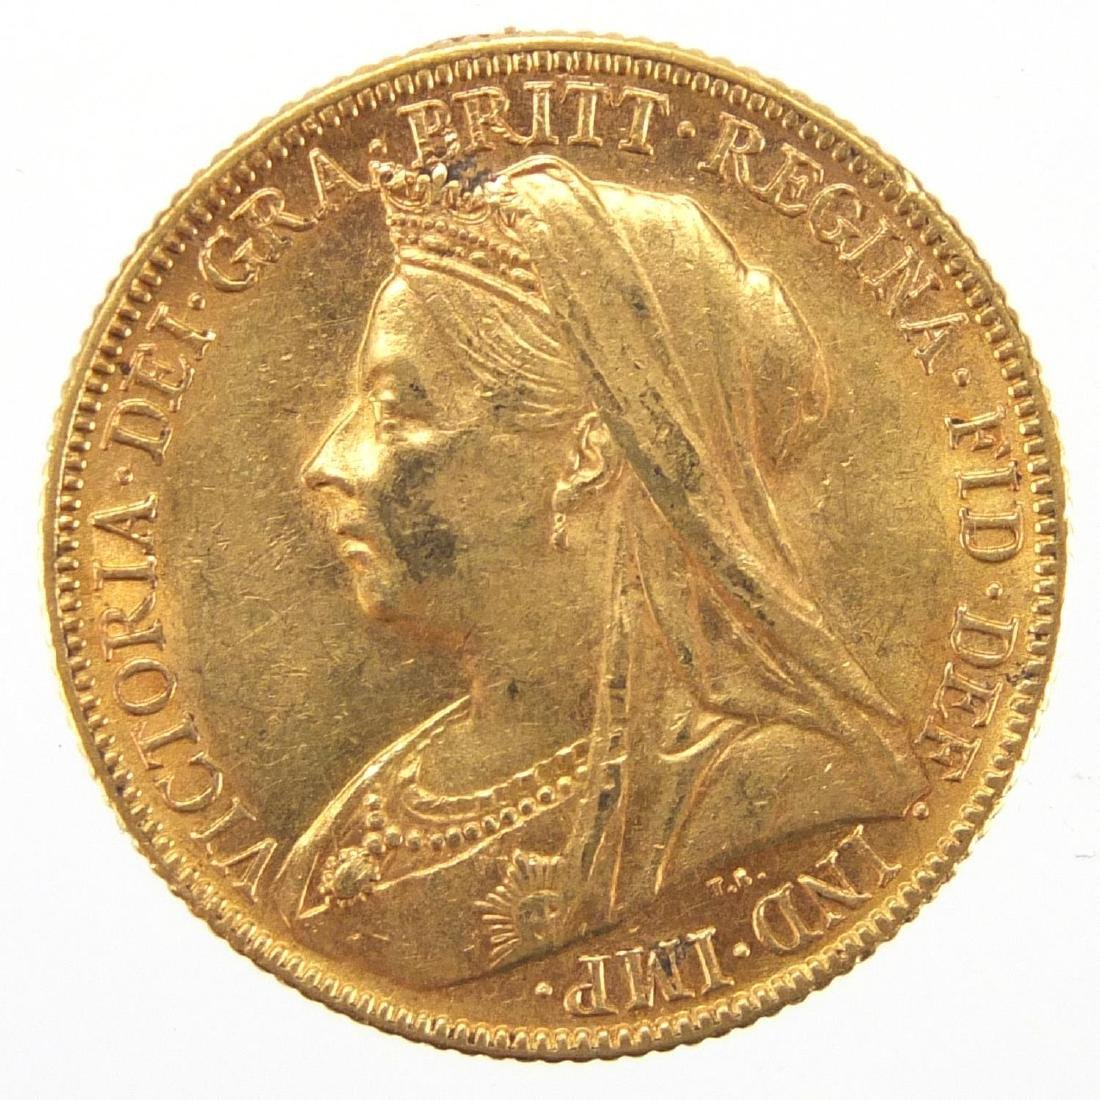 Queen Victoria 1898 gold sovereign Further condition reports can be found at the auctioneers